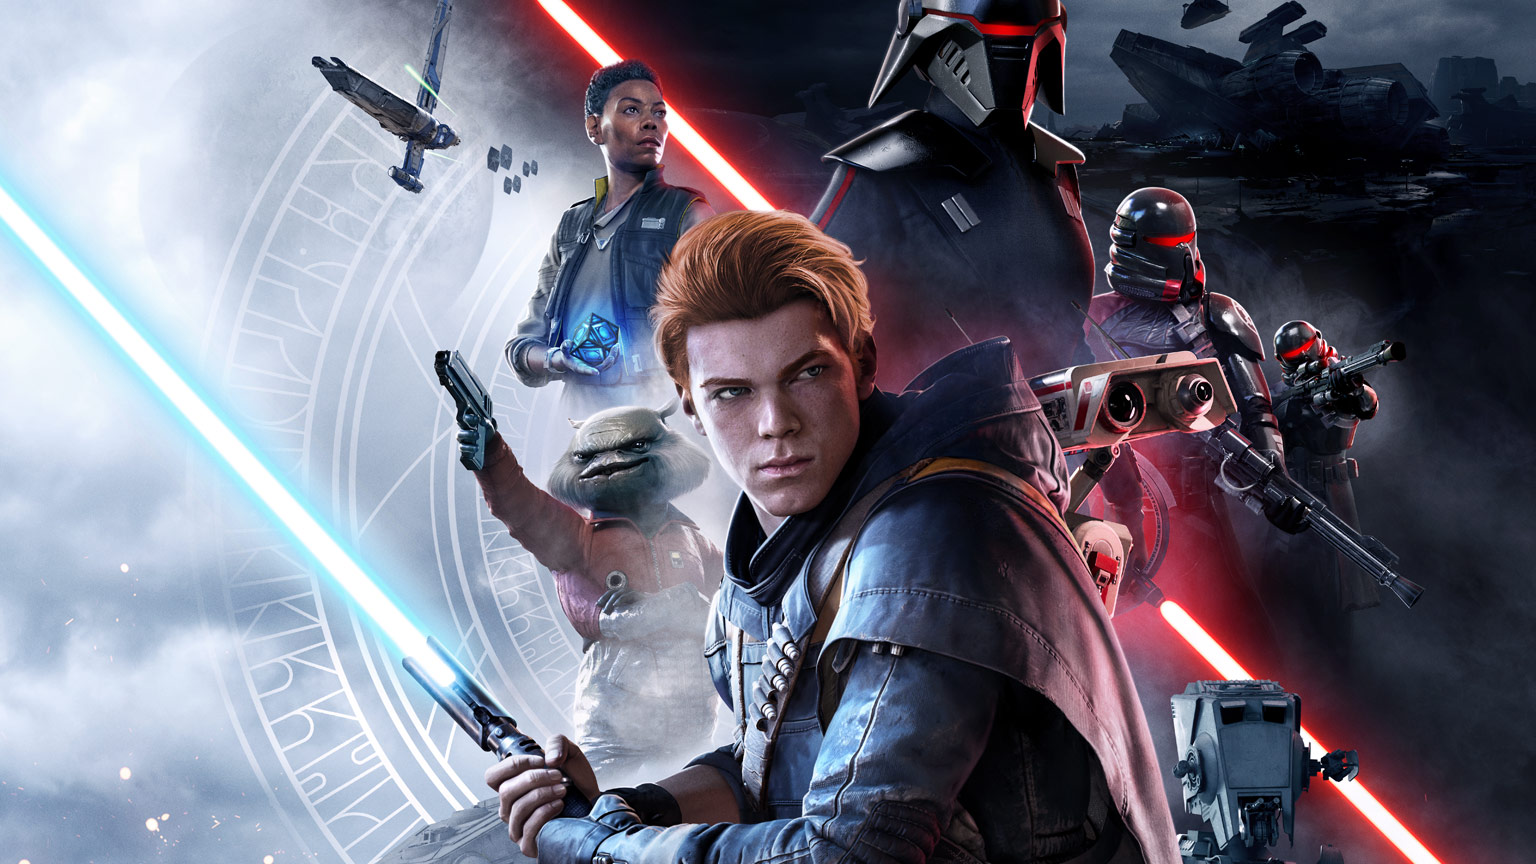 Star Wars Jedi: Fallen Order key art